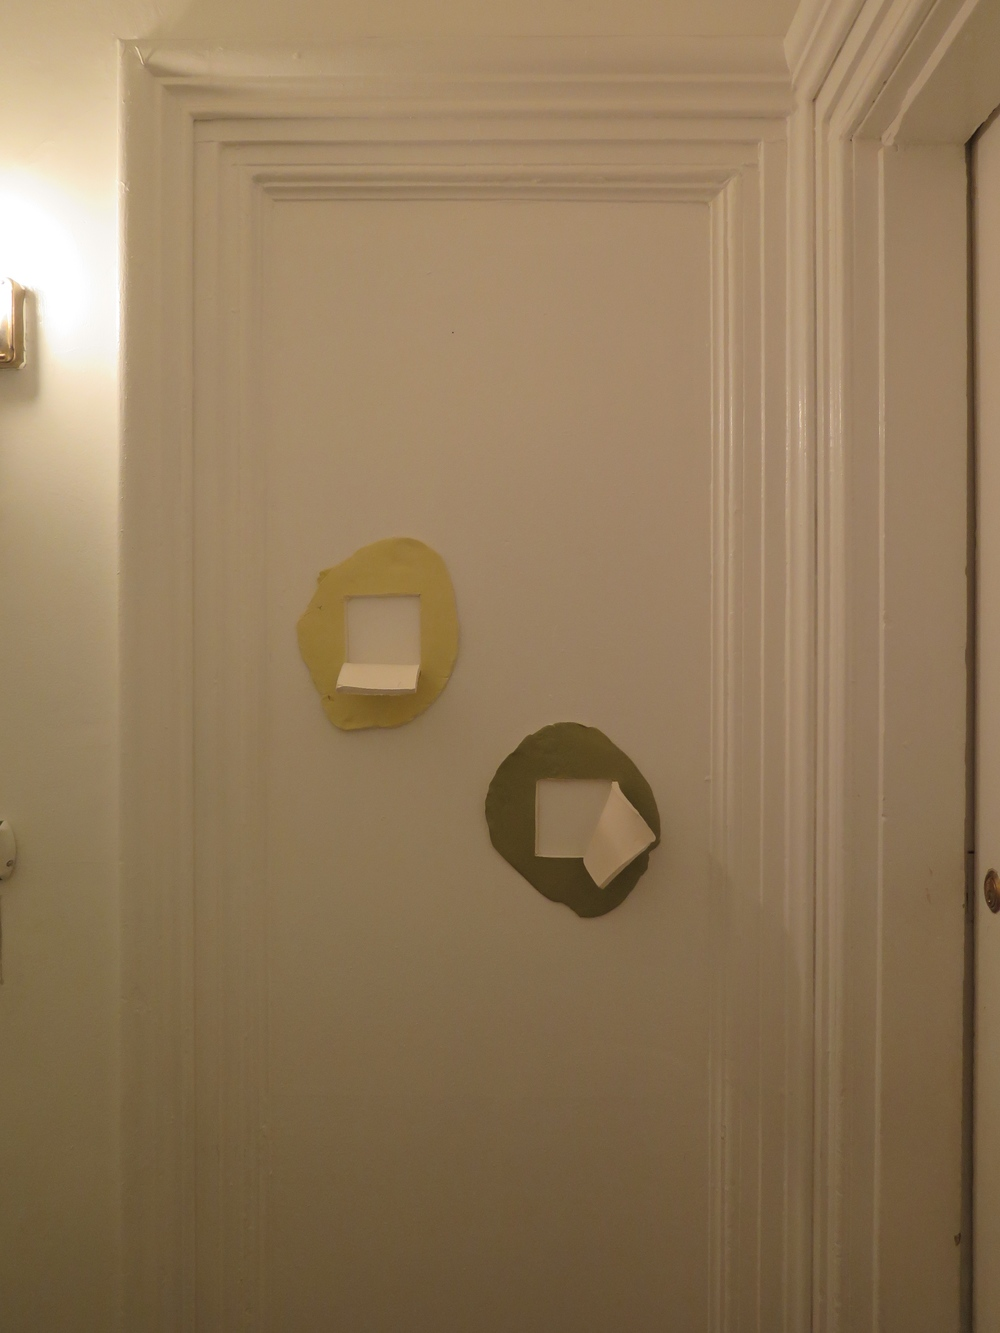 """Memory of 171 Waverly Bathroom: Pantone #'s 461C and 5773C (diptych)"" by Beatrice Wolert for apARTment #2"